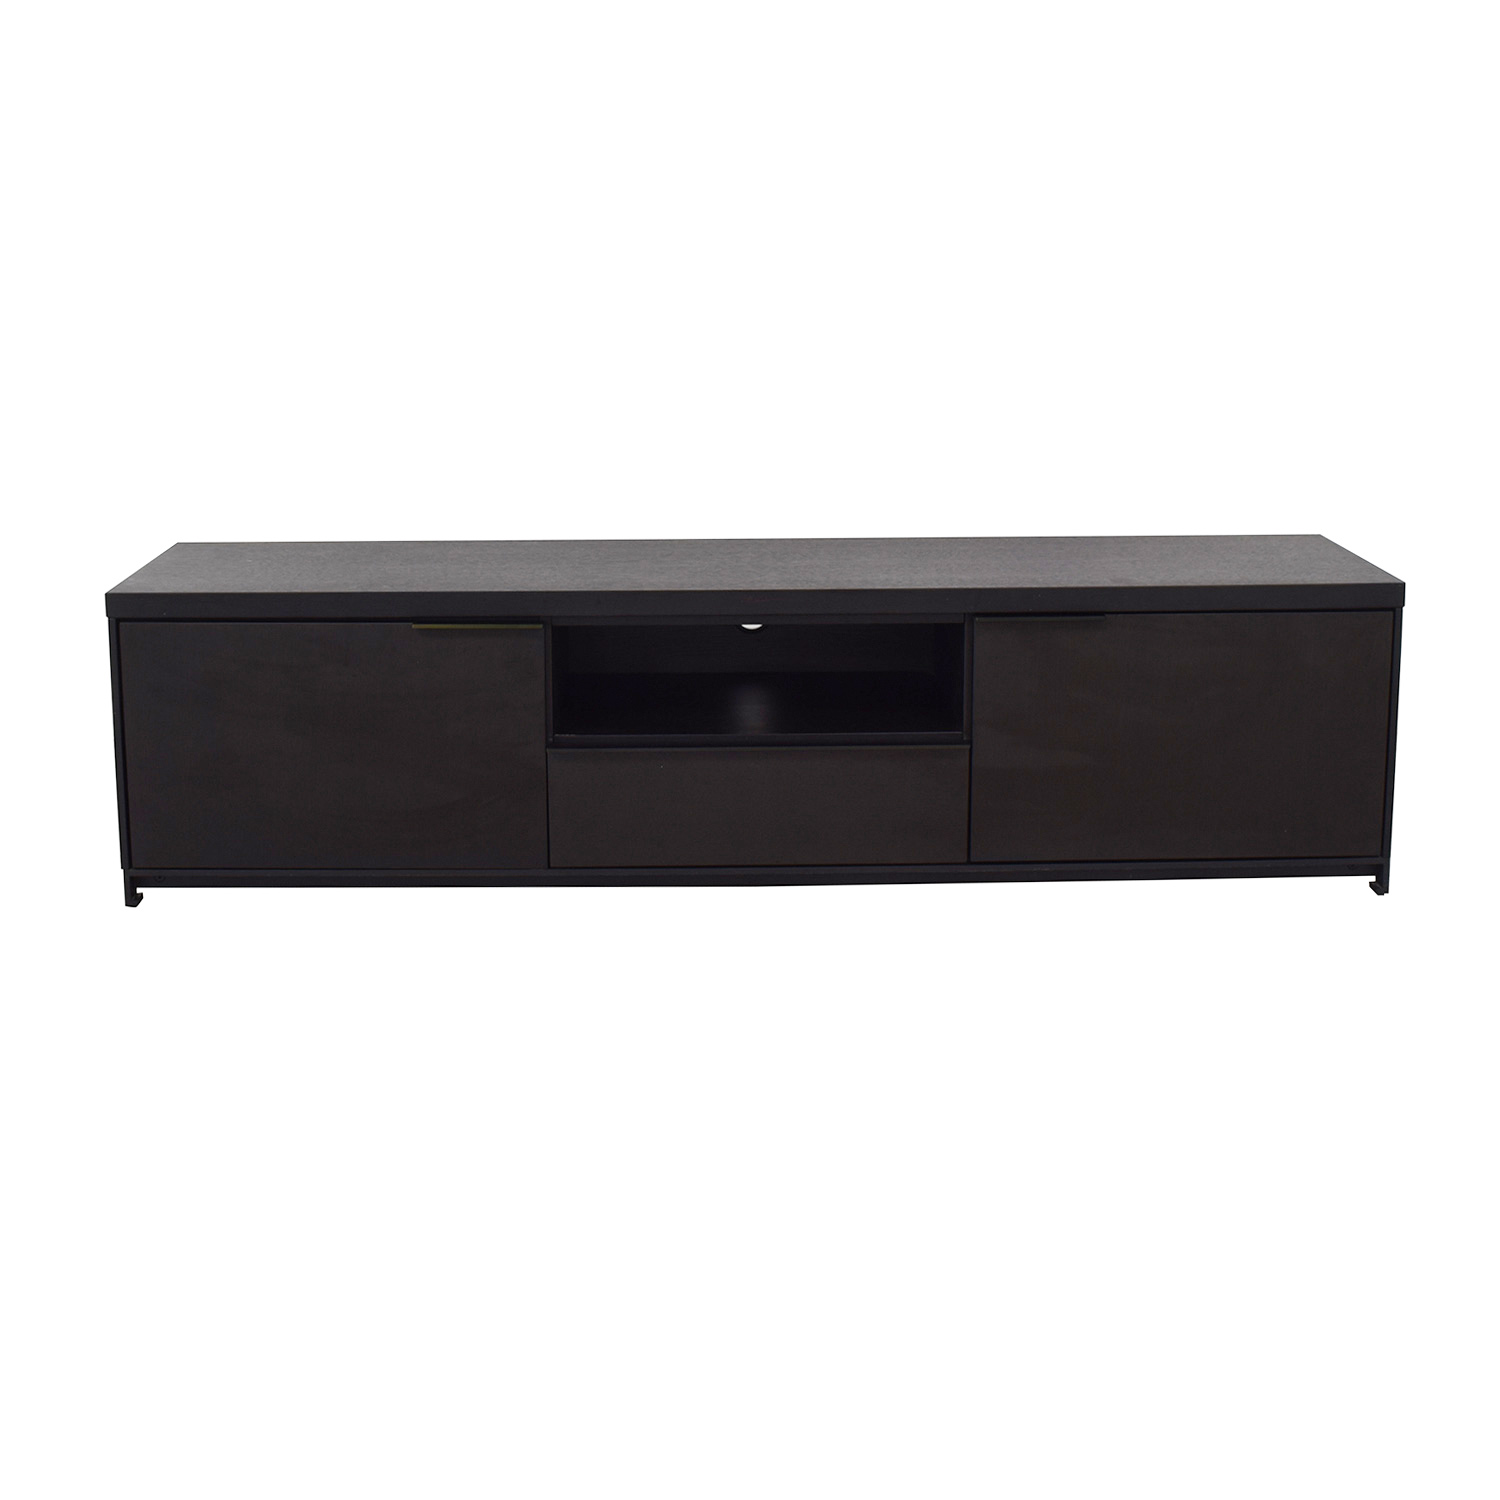 Tui Lifestyle Gray Media Unit / Storage